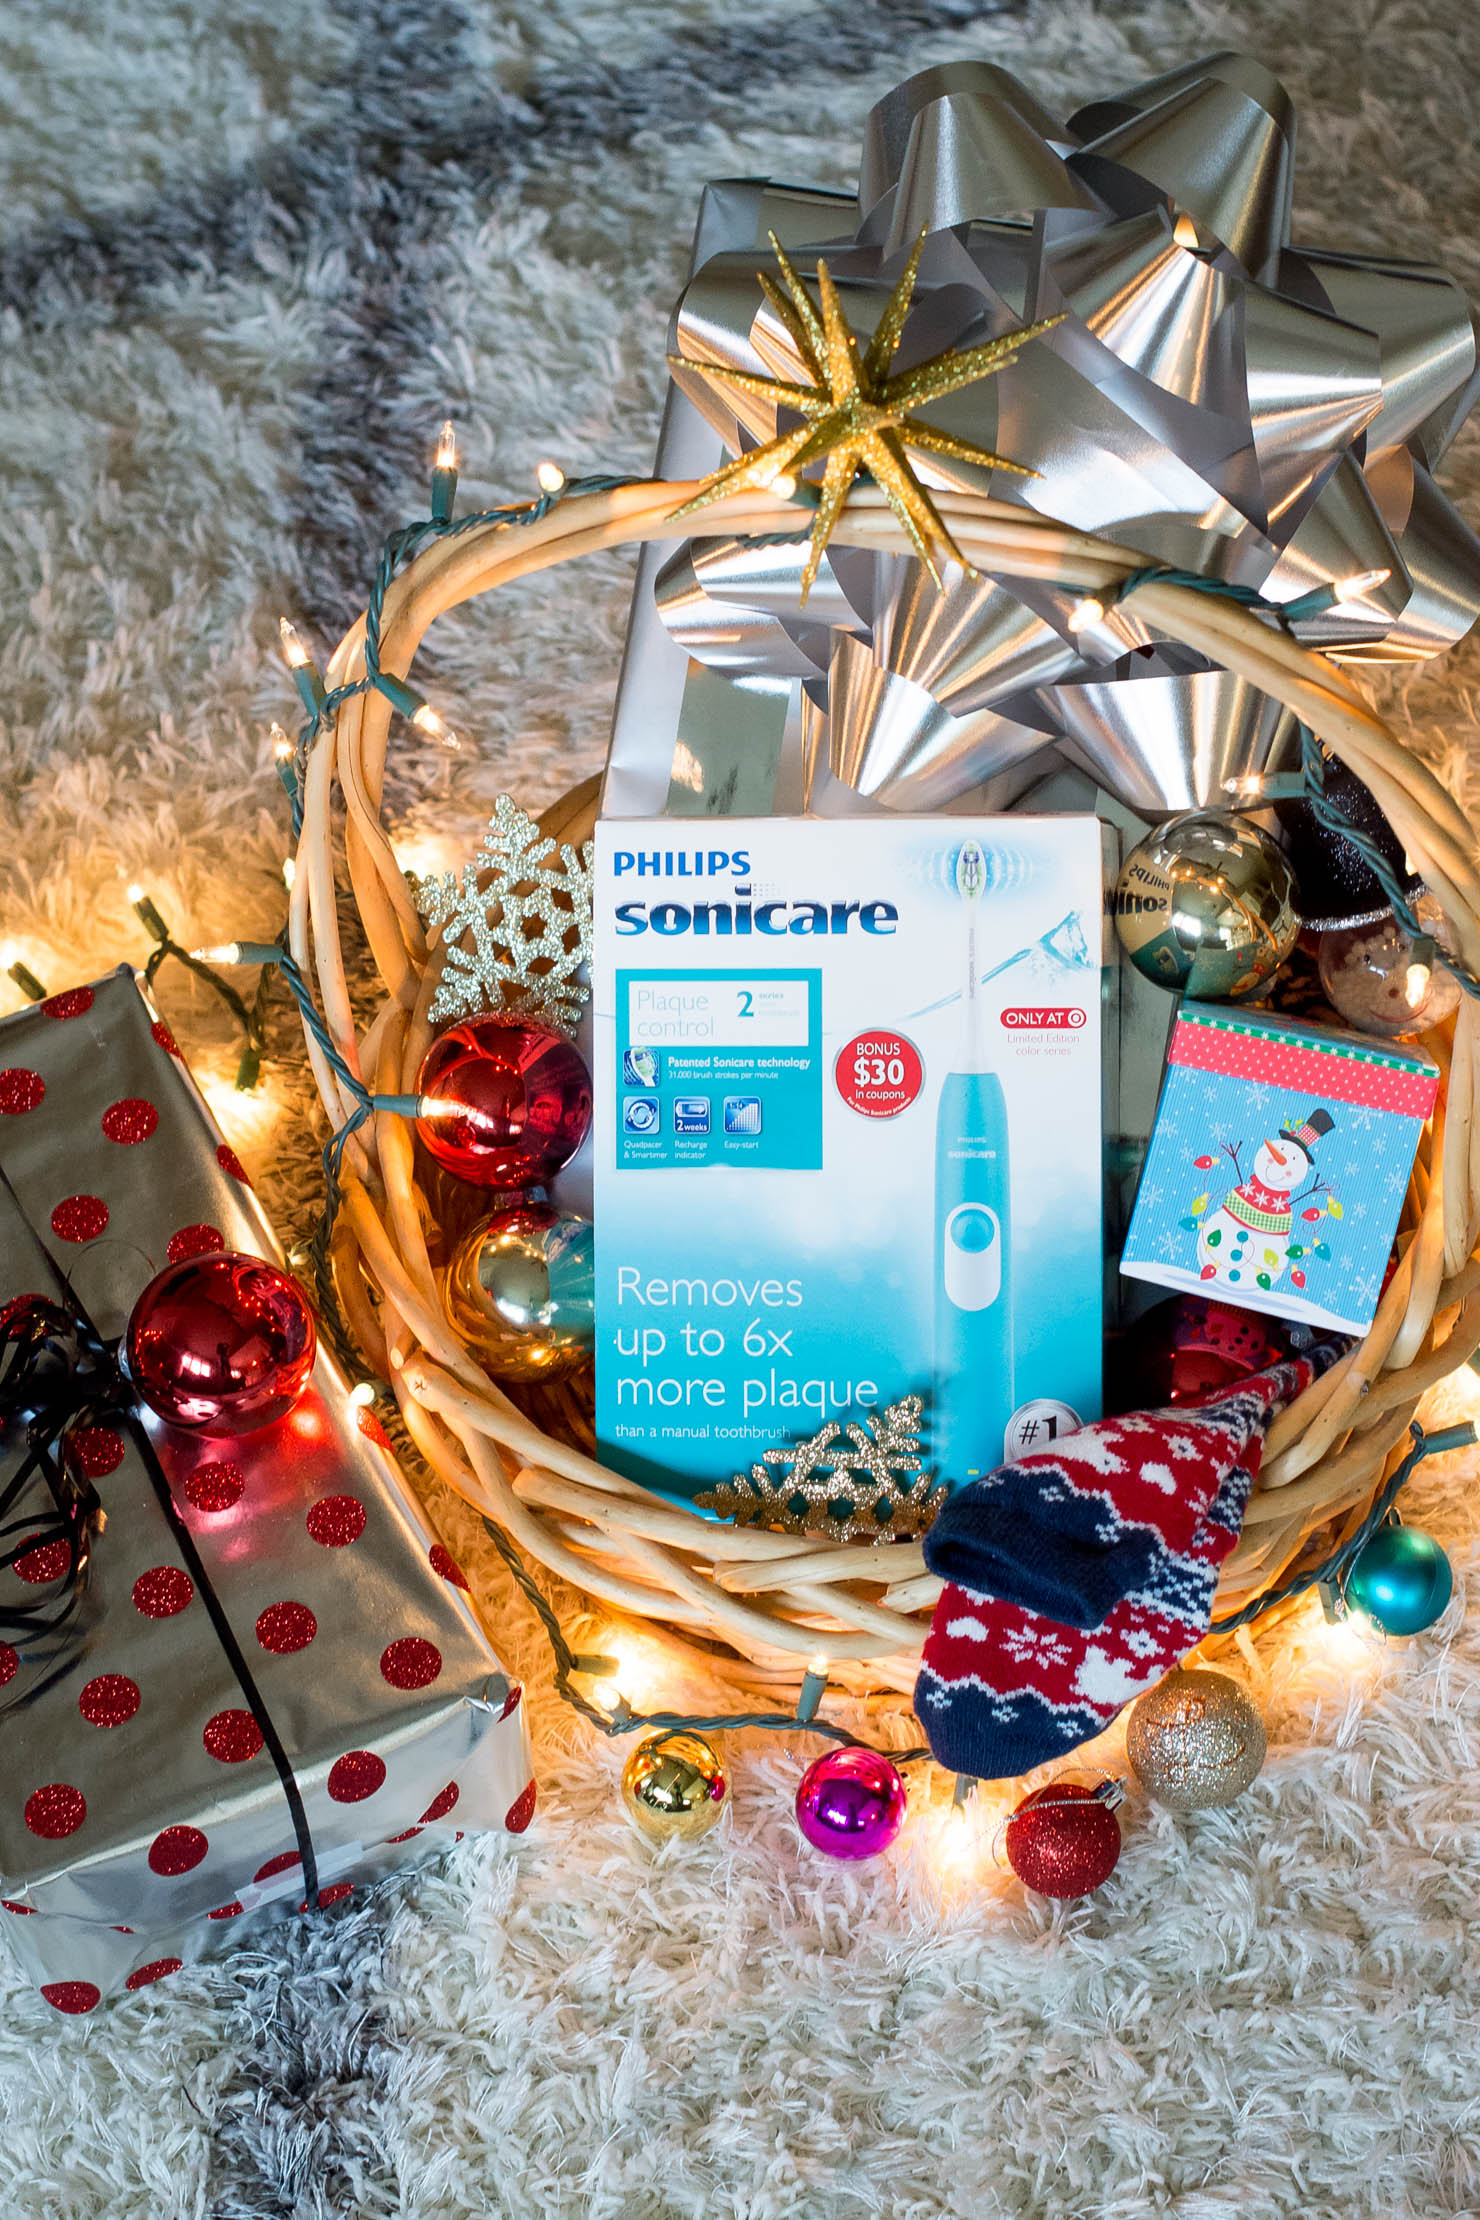 Give the Gift of Sonicare this Holiday Season, give sonicare for the holidays to the woman in your life the last toothbrush you'll buy, philips sonicare at target